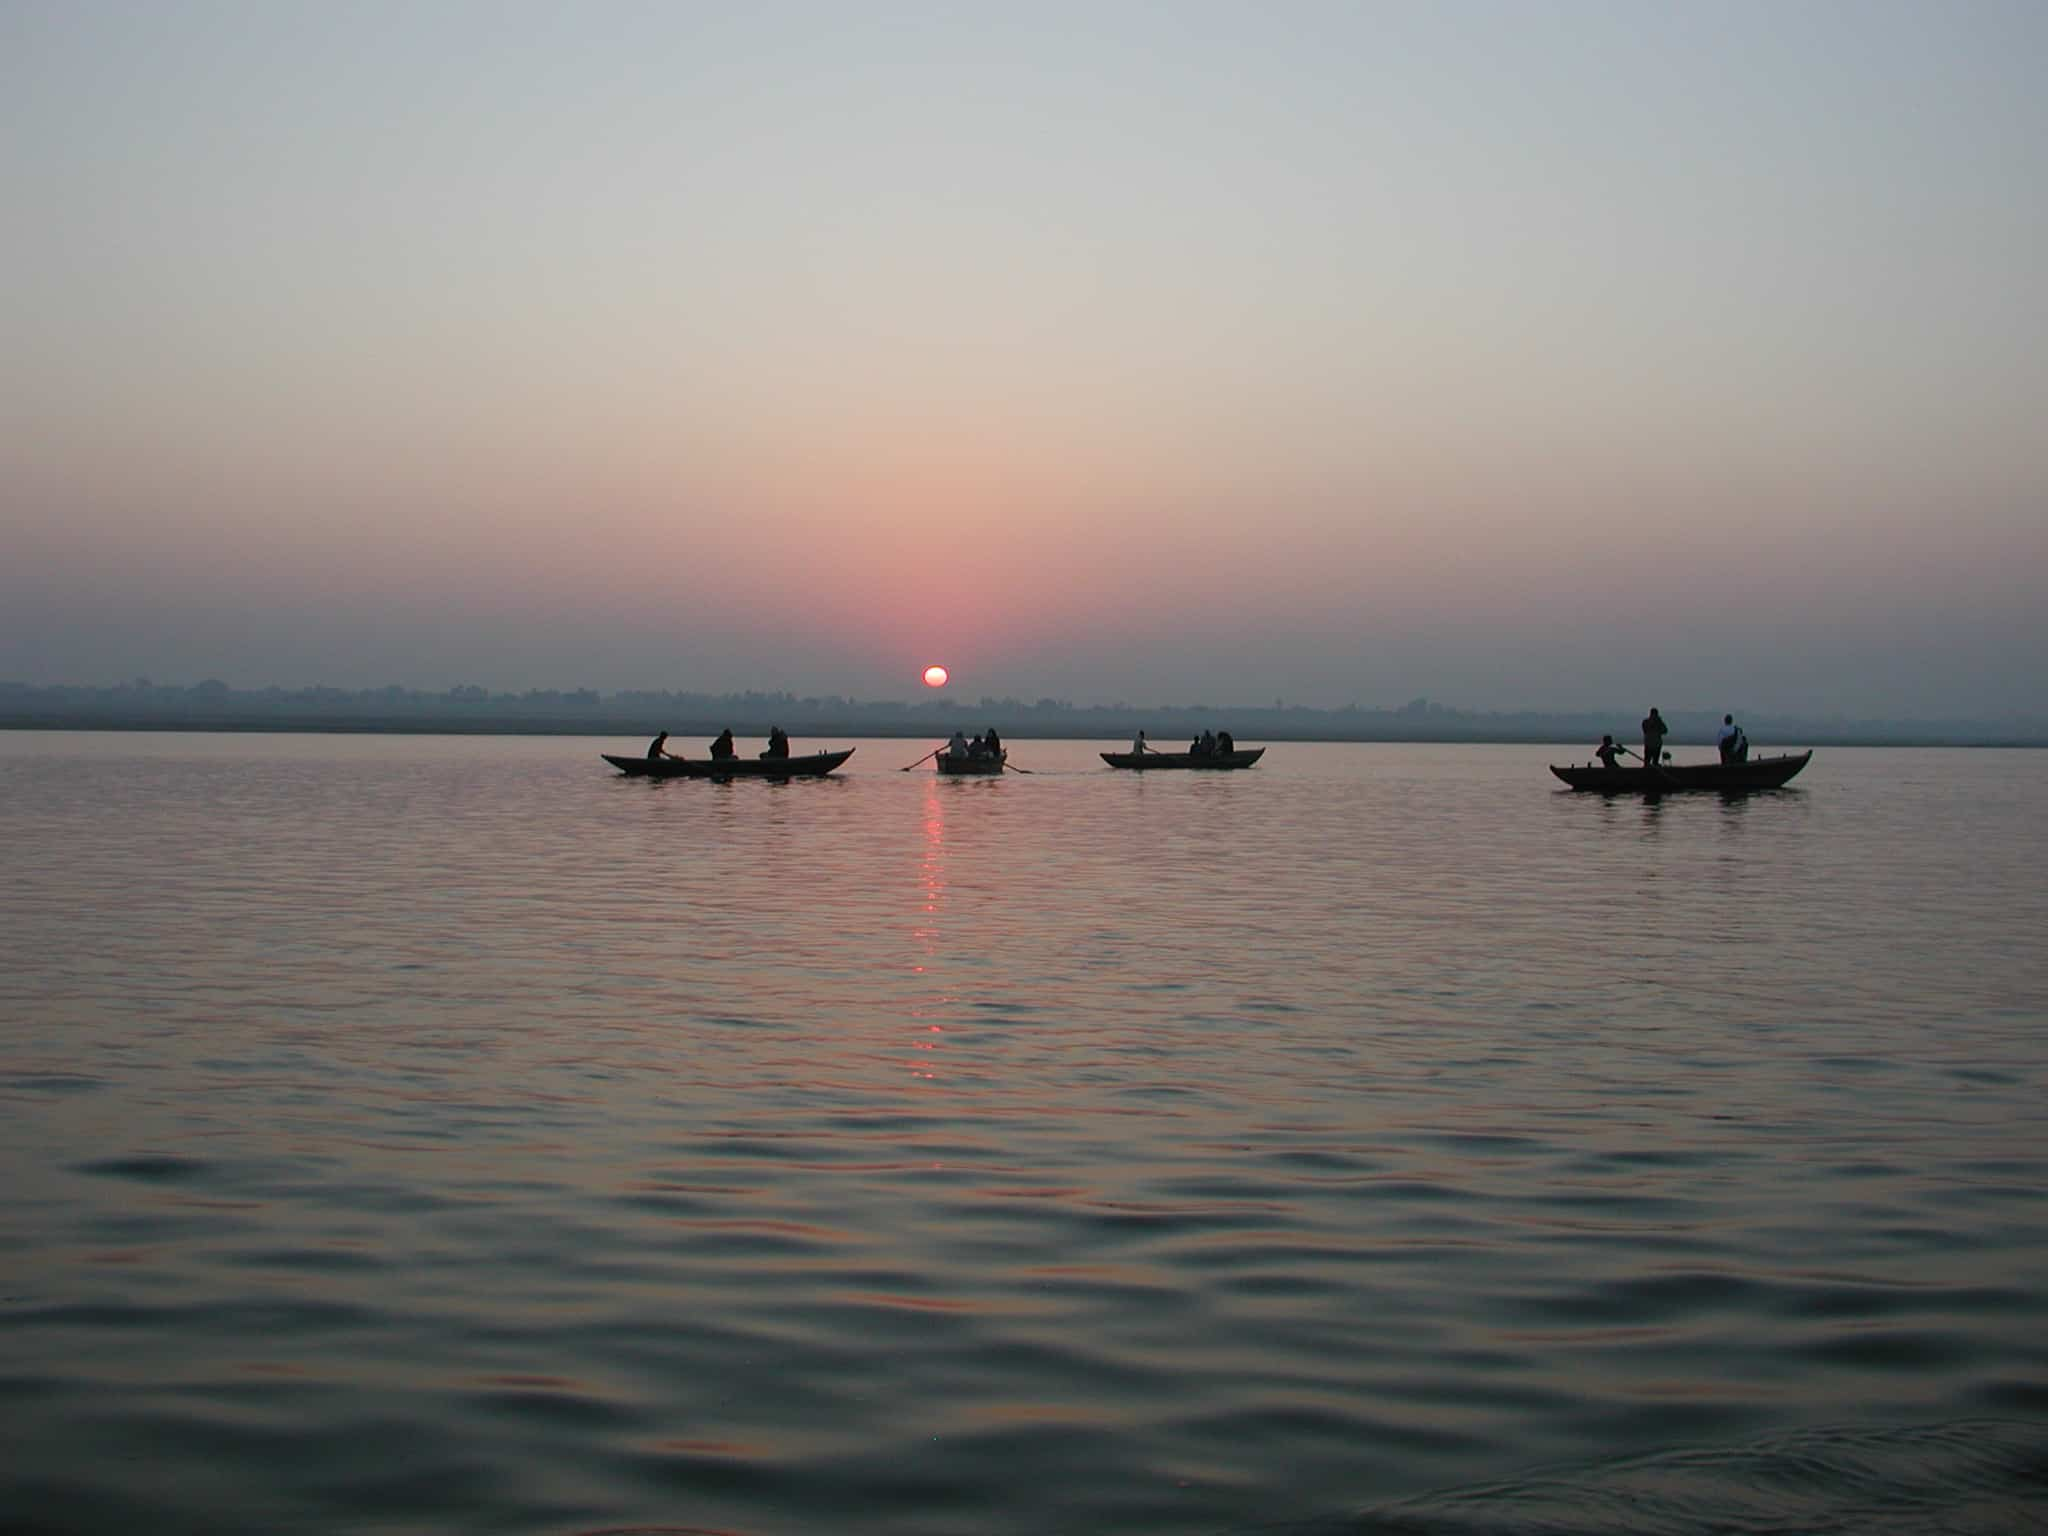 Jai Ganga Mata: Hymn to the Ganges River